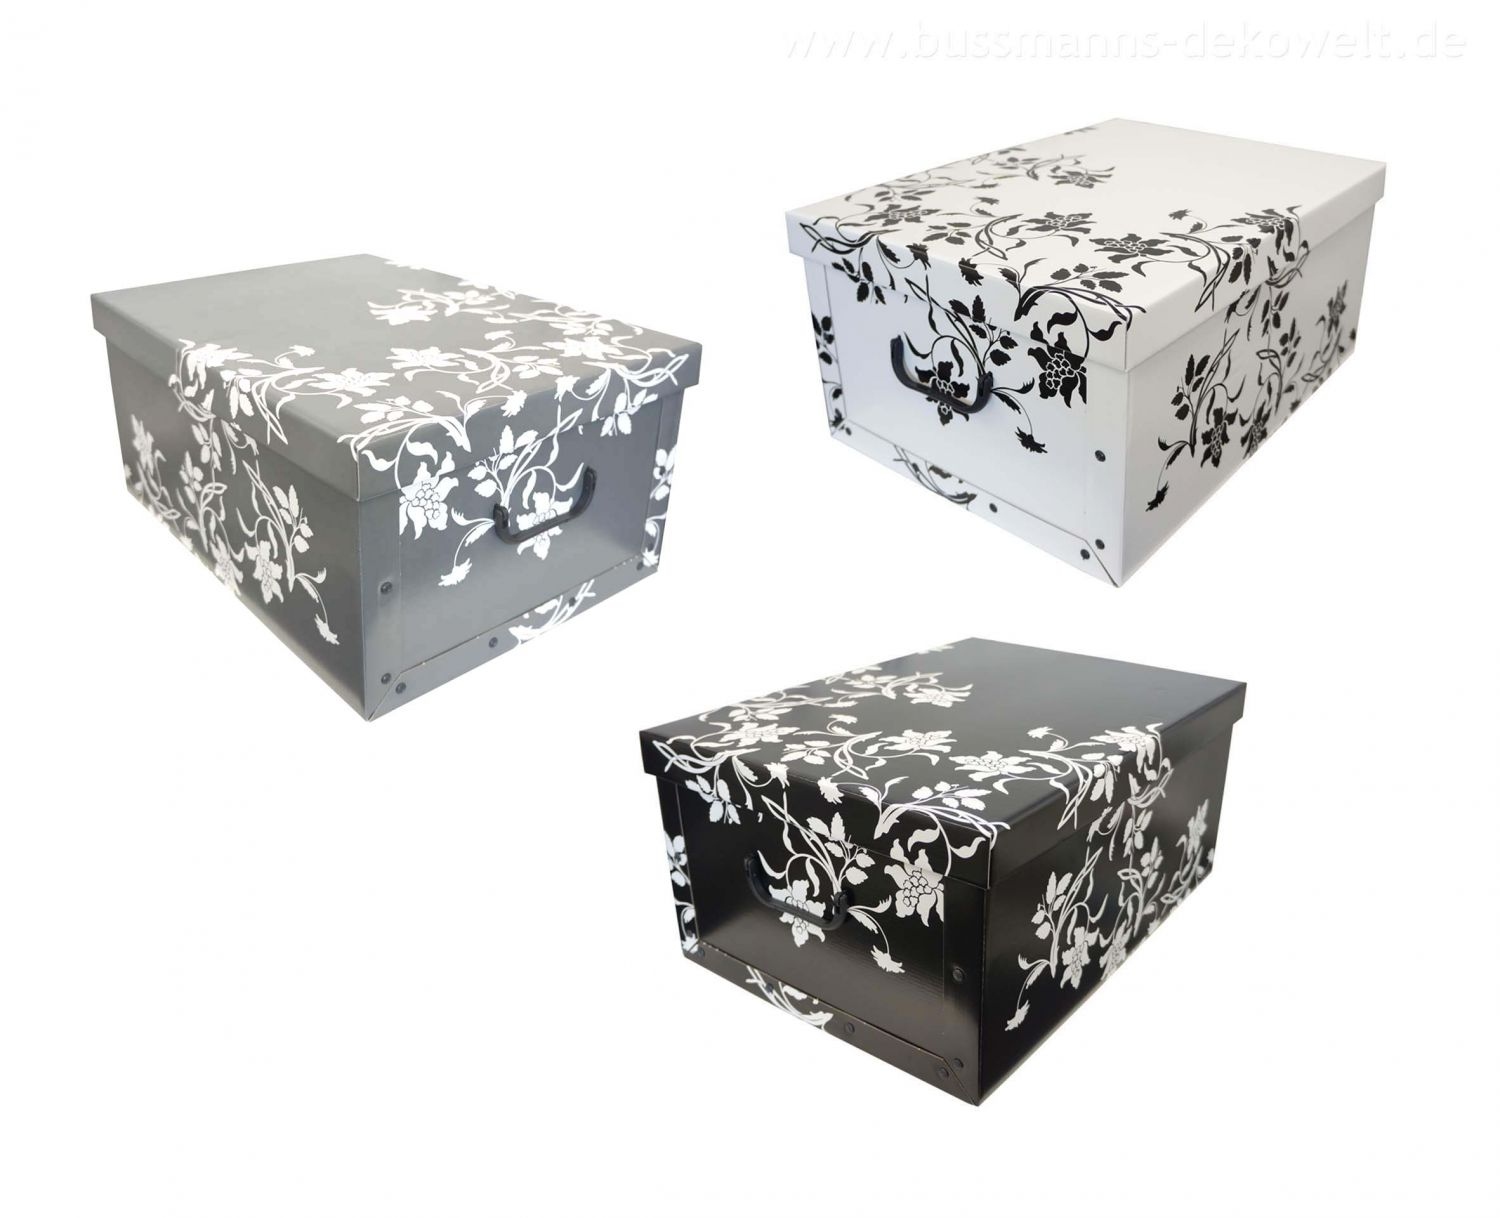 2x aufbewahrungs box mit deckel floralmuster kiste karton. Black Bedroom Furniture Sets. Home Design Ideas